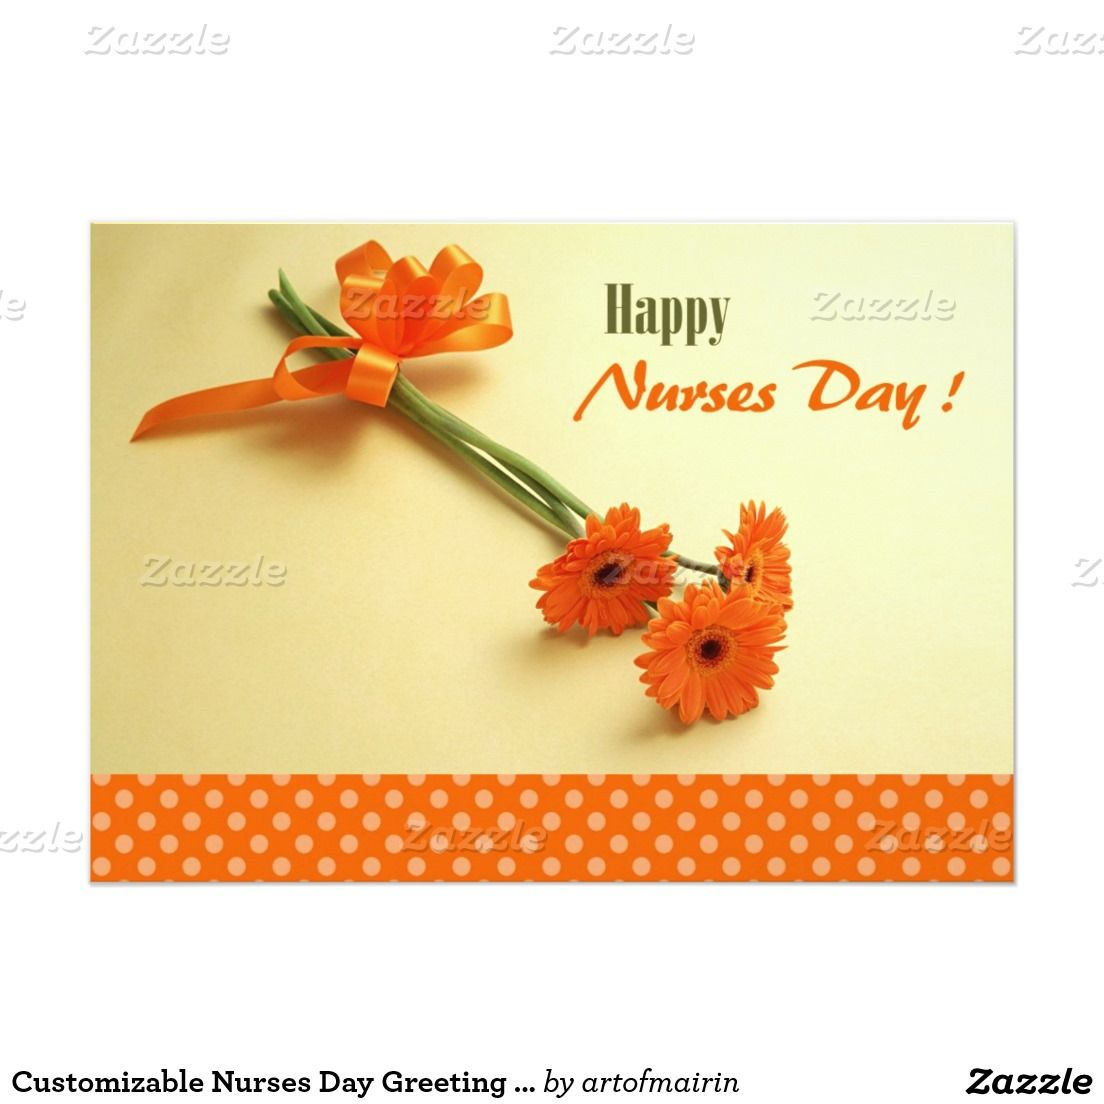 Customizable nurses day greeting cards healthcare pinterest colorful daisies nurses day flat greeting cards for nurses with customizable greeting matching cards postage stamps and other products available in the m4hsunfo